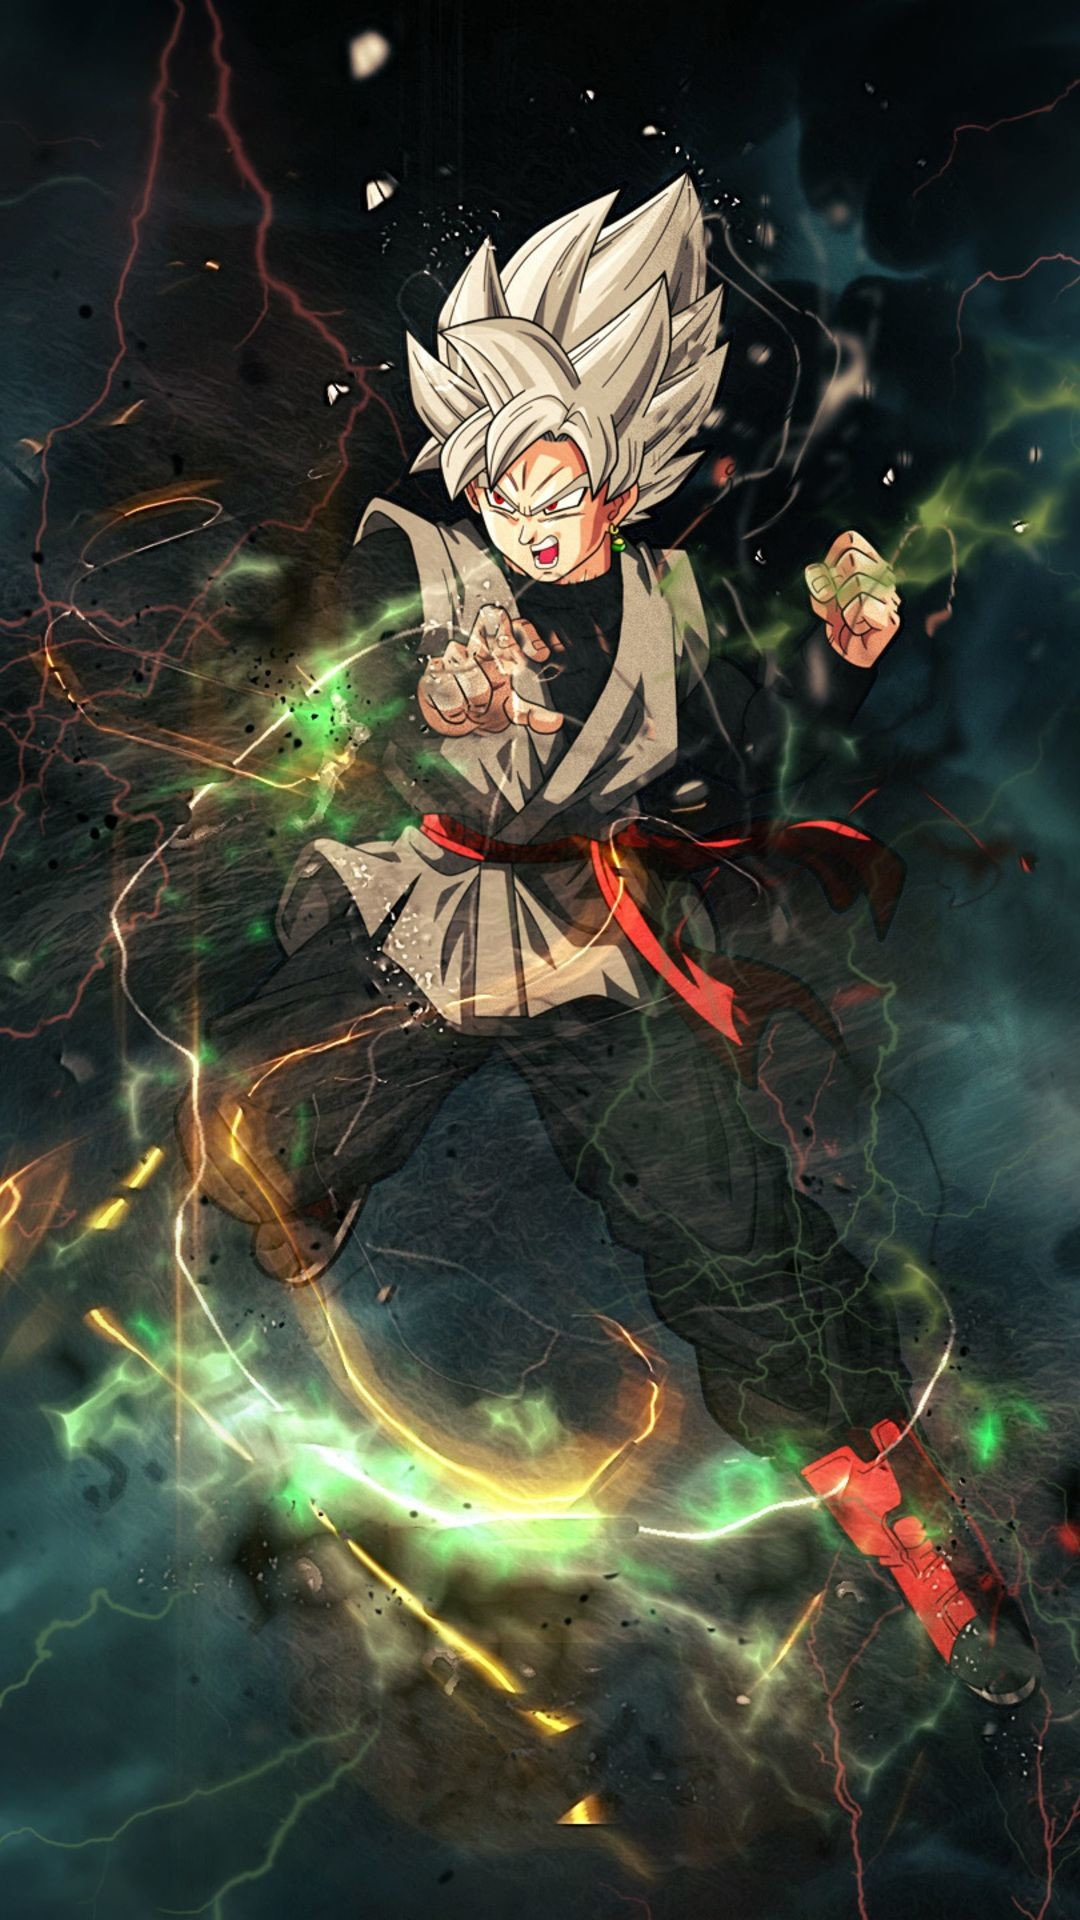 Cool Anime Iphone 6 6 Plus Wallpaper And Background Anime Wallpaper 4k Android 1080x1920 Wallpaper Teahub Io